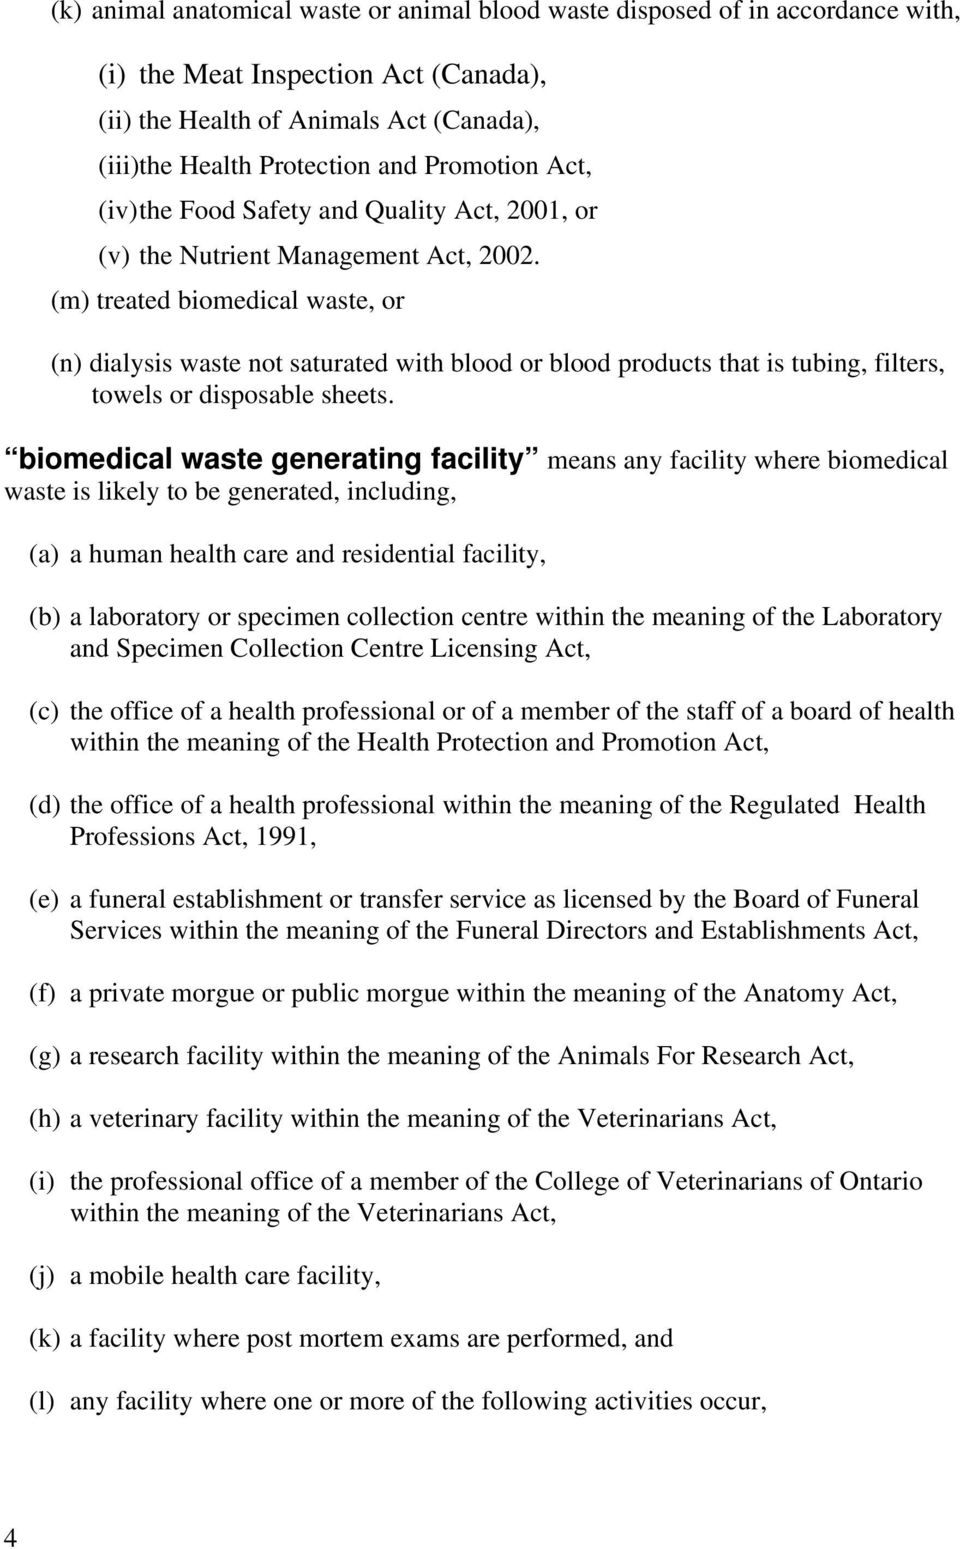 (m) treated biomedical waste, or (n) dialysis waste not saturated with blood or blood products that is tubing, filters, towels or disposable sheets.